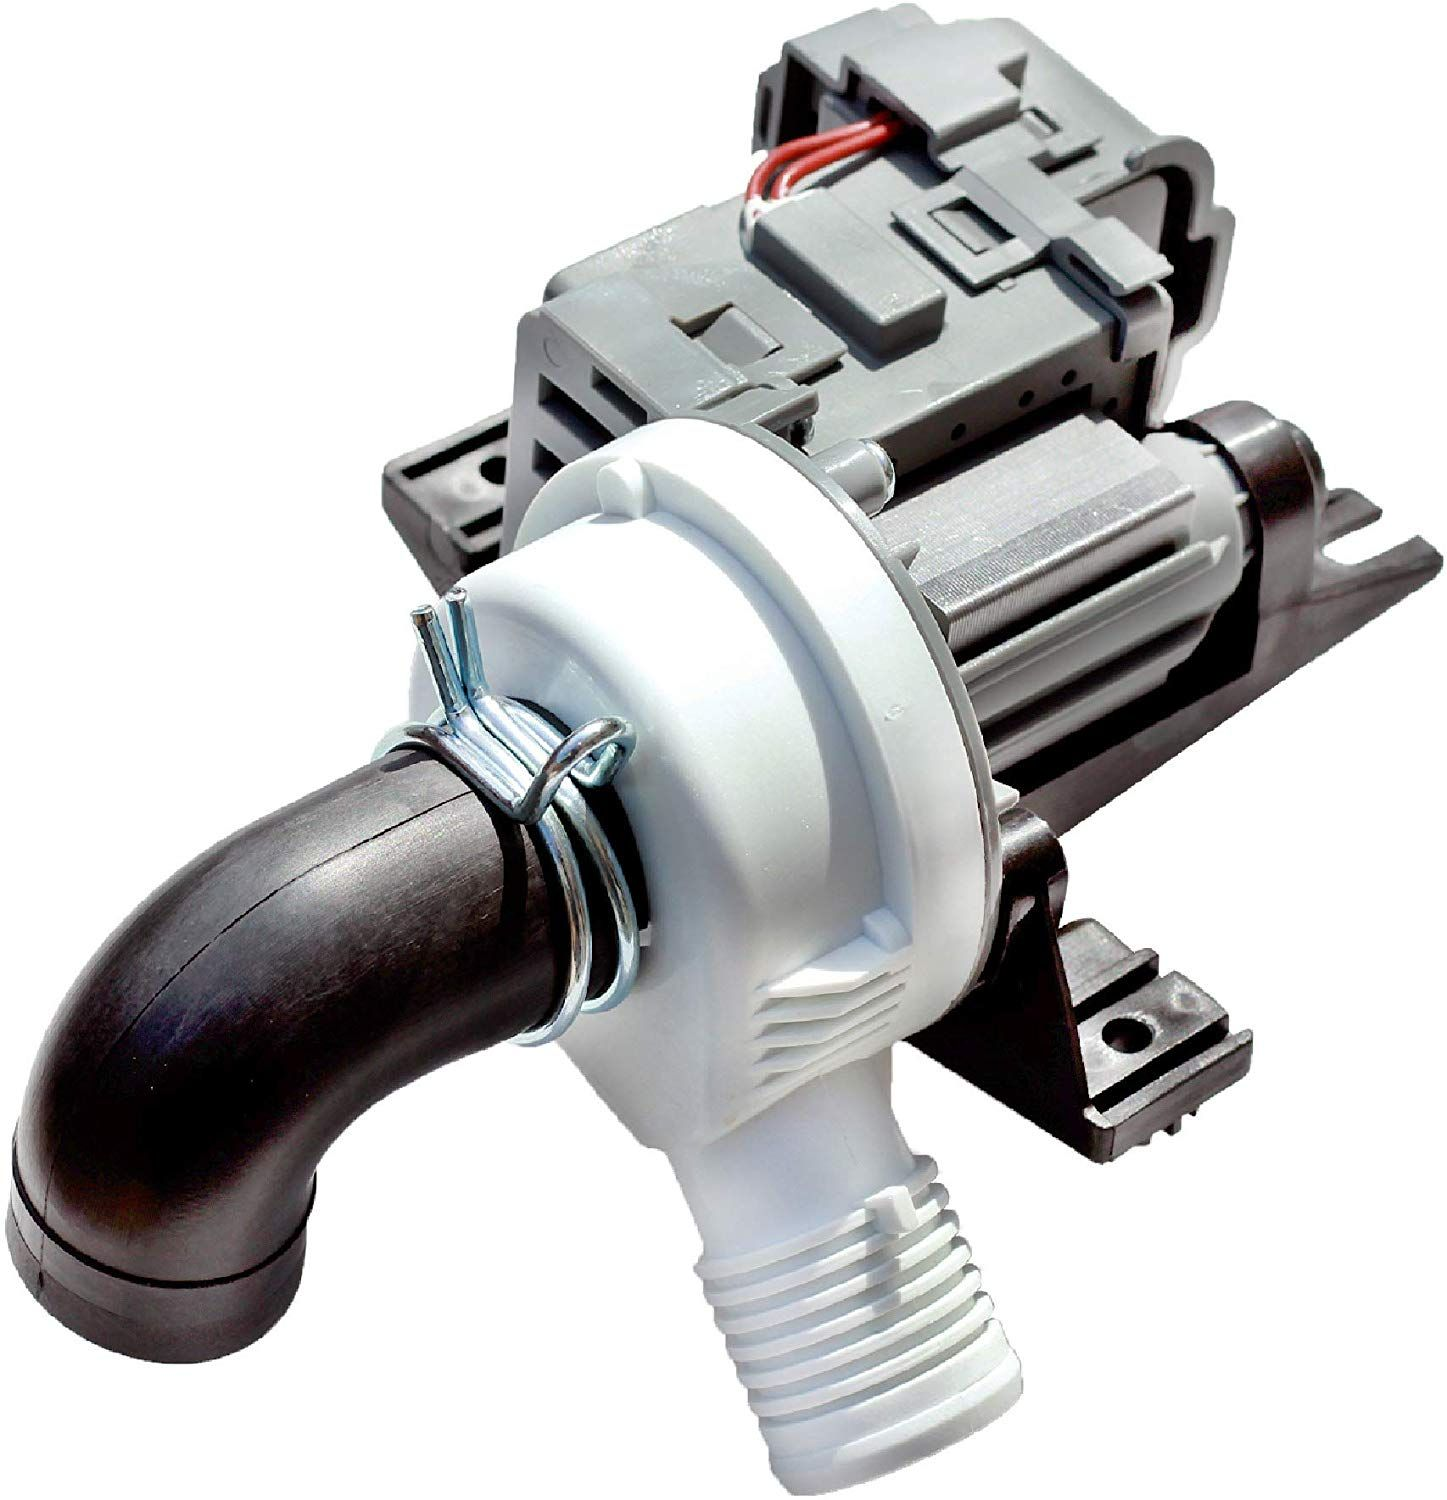 This Pump Could Be What You Need To Repair Your Washing Machine In 2020 Drain Pump Repair And Maintenance Repair